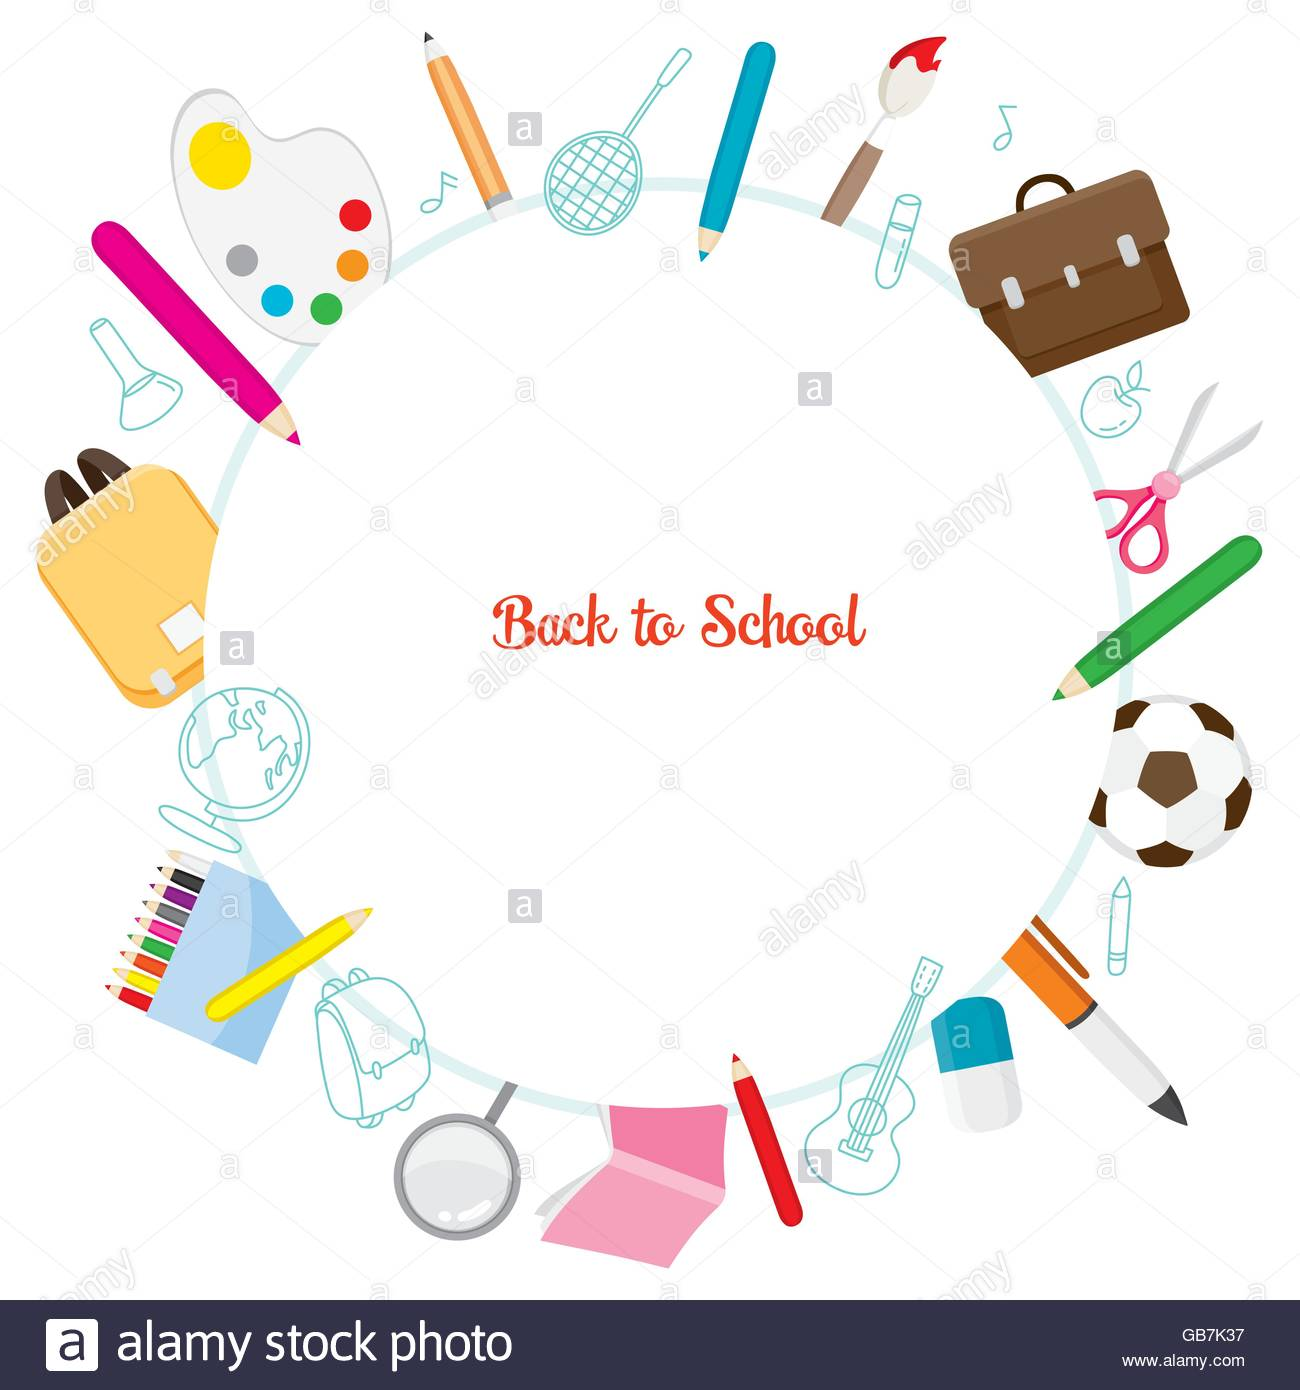 School Supplies Icons On Circle Frame, Back to school, Educational.